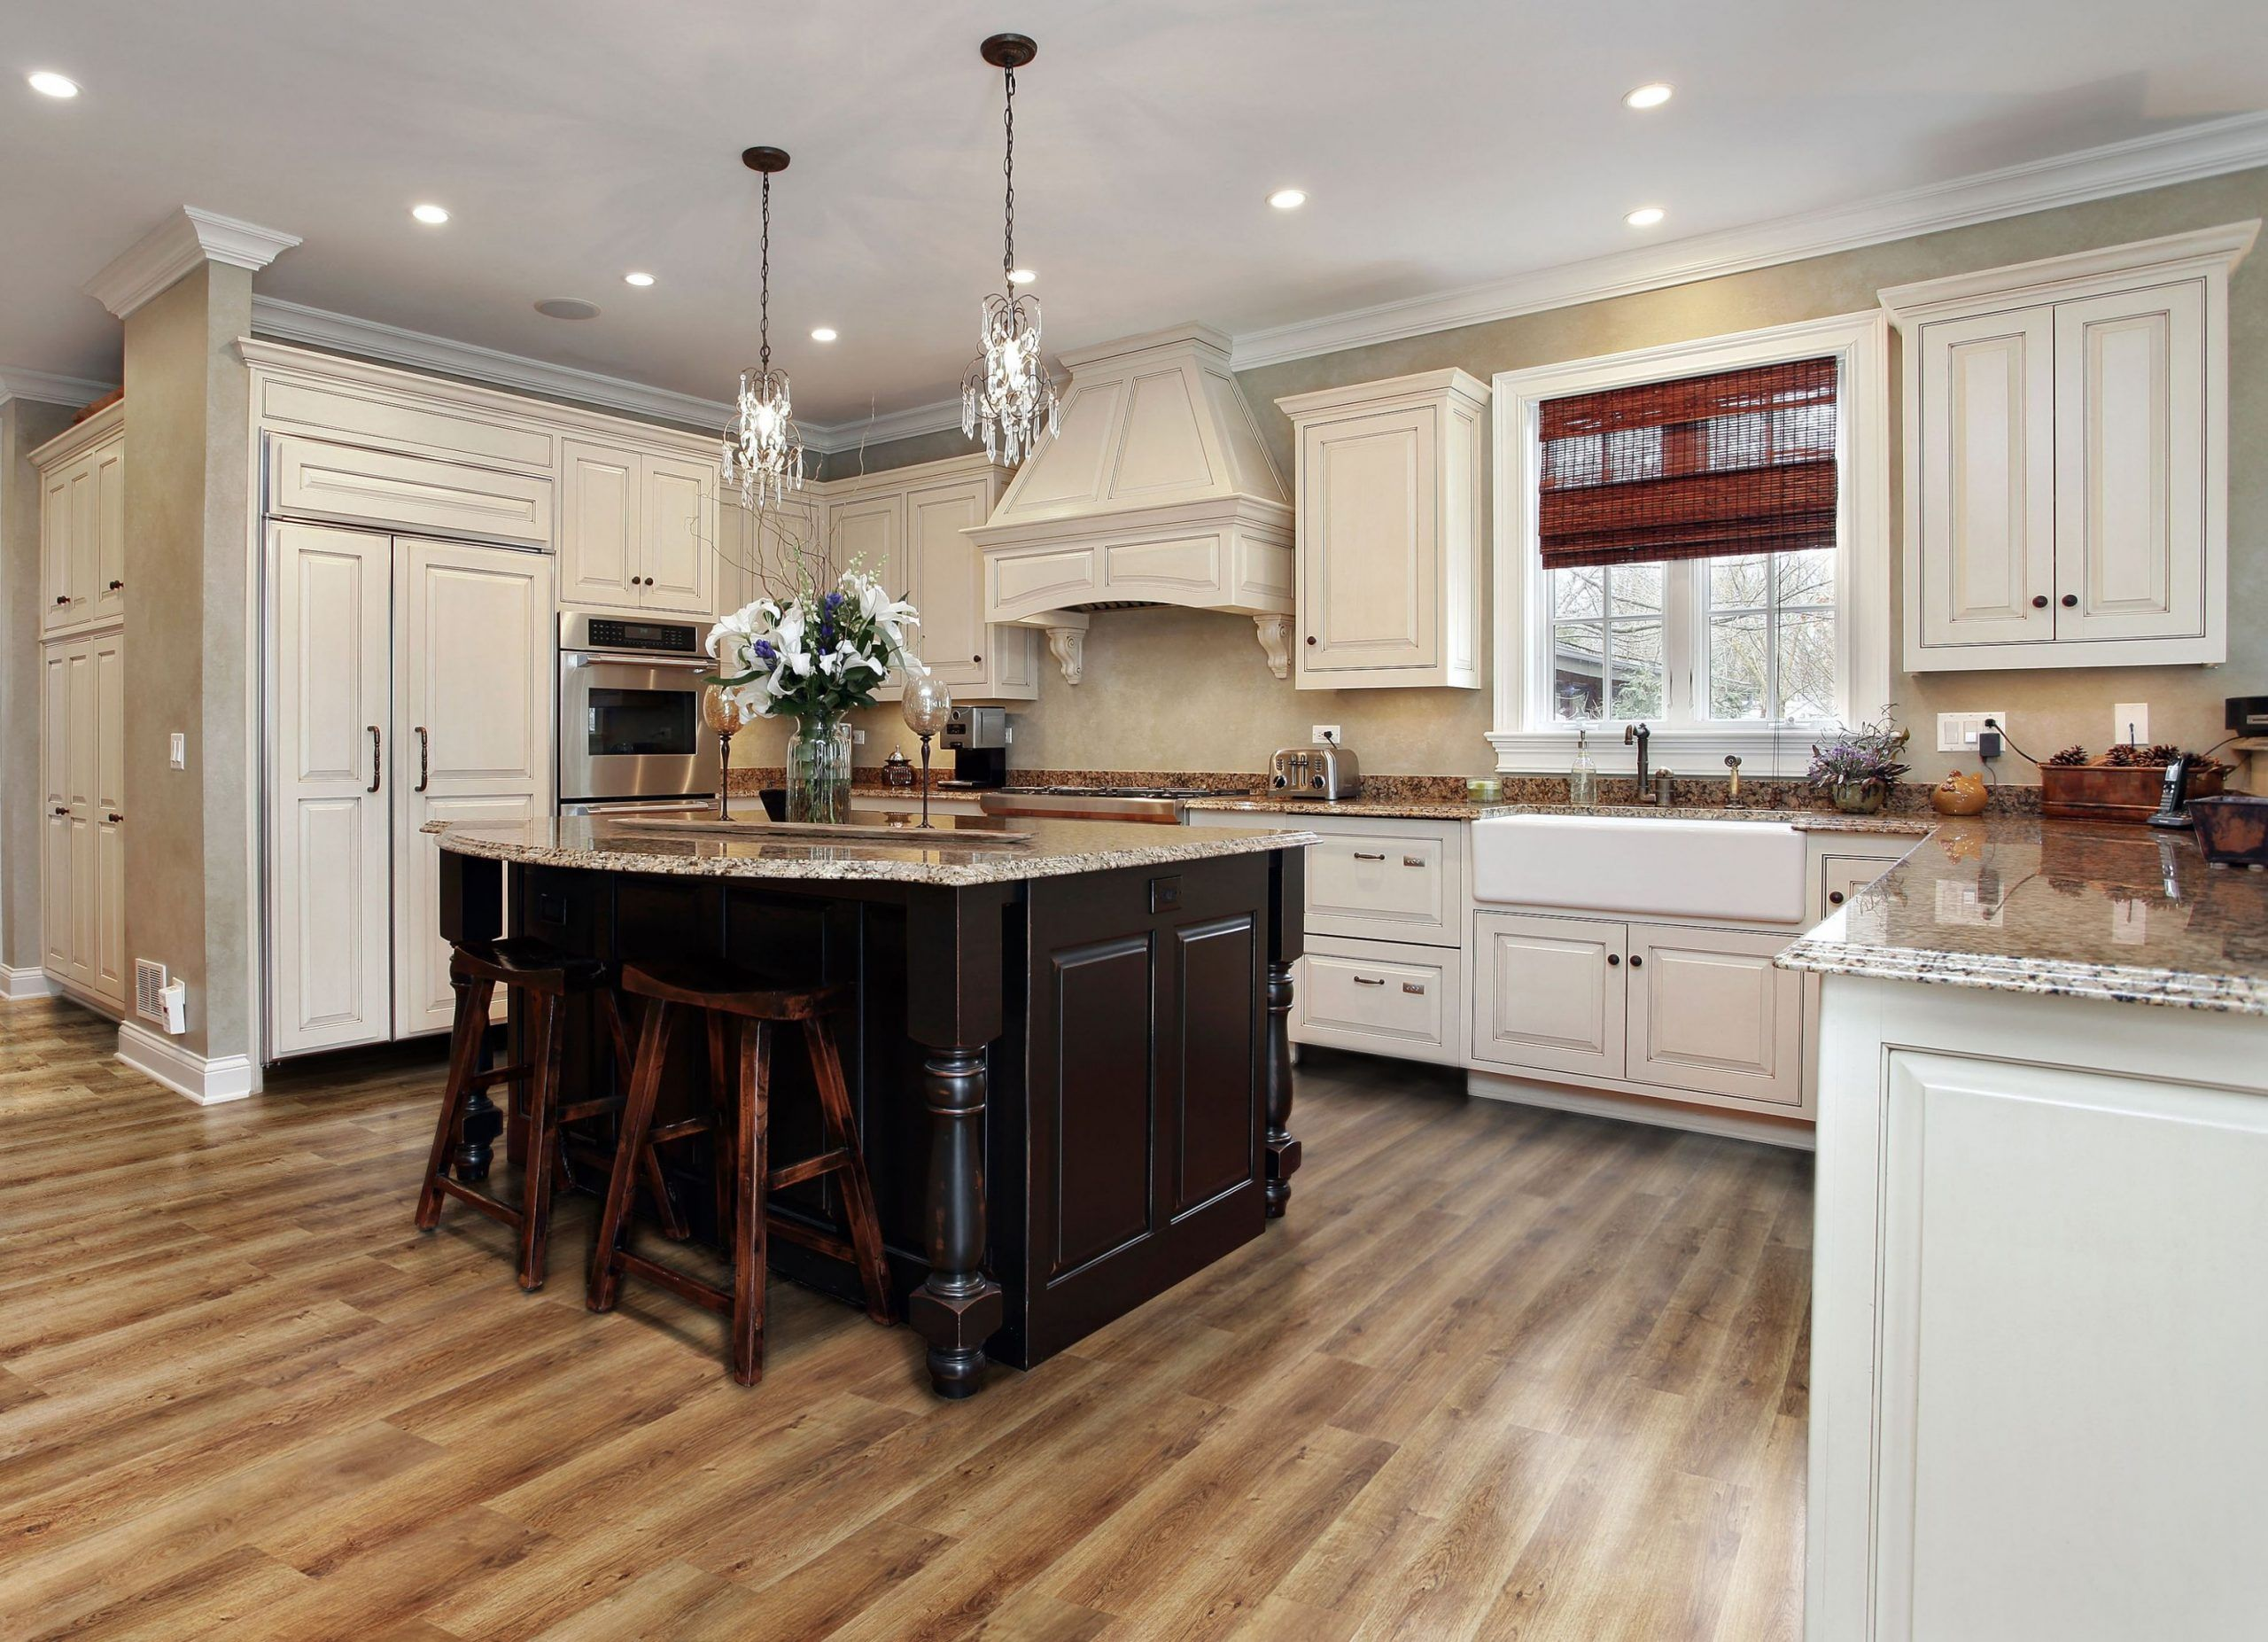 What You Should Wear To Kitchen Floor Underlayment